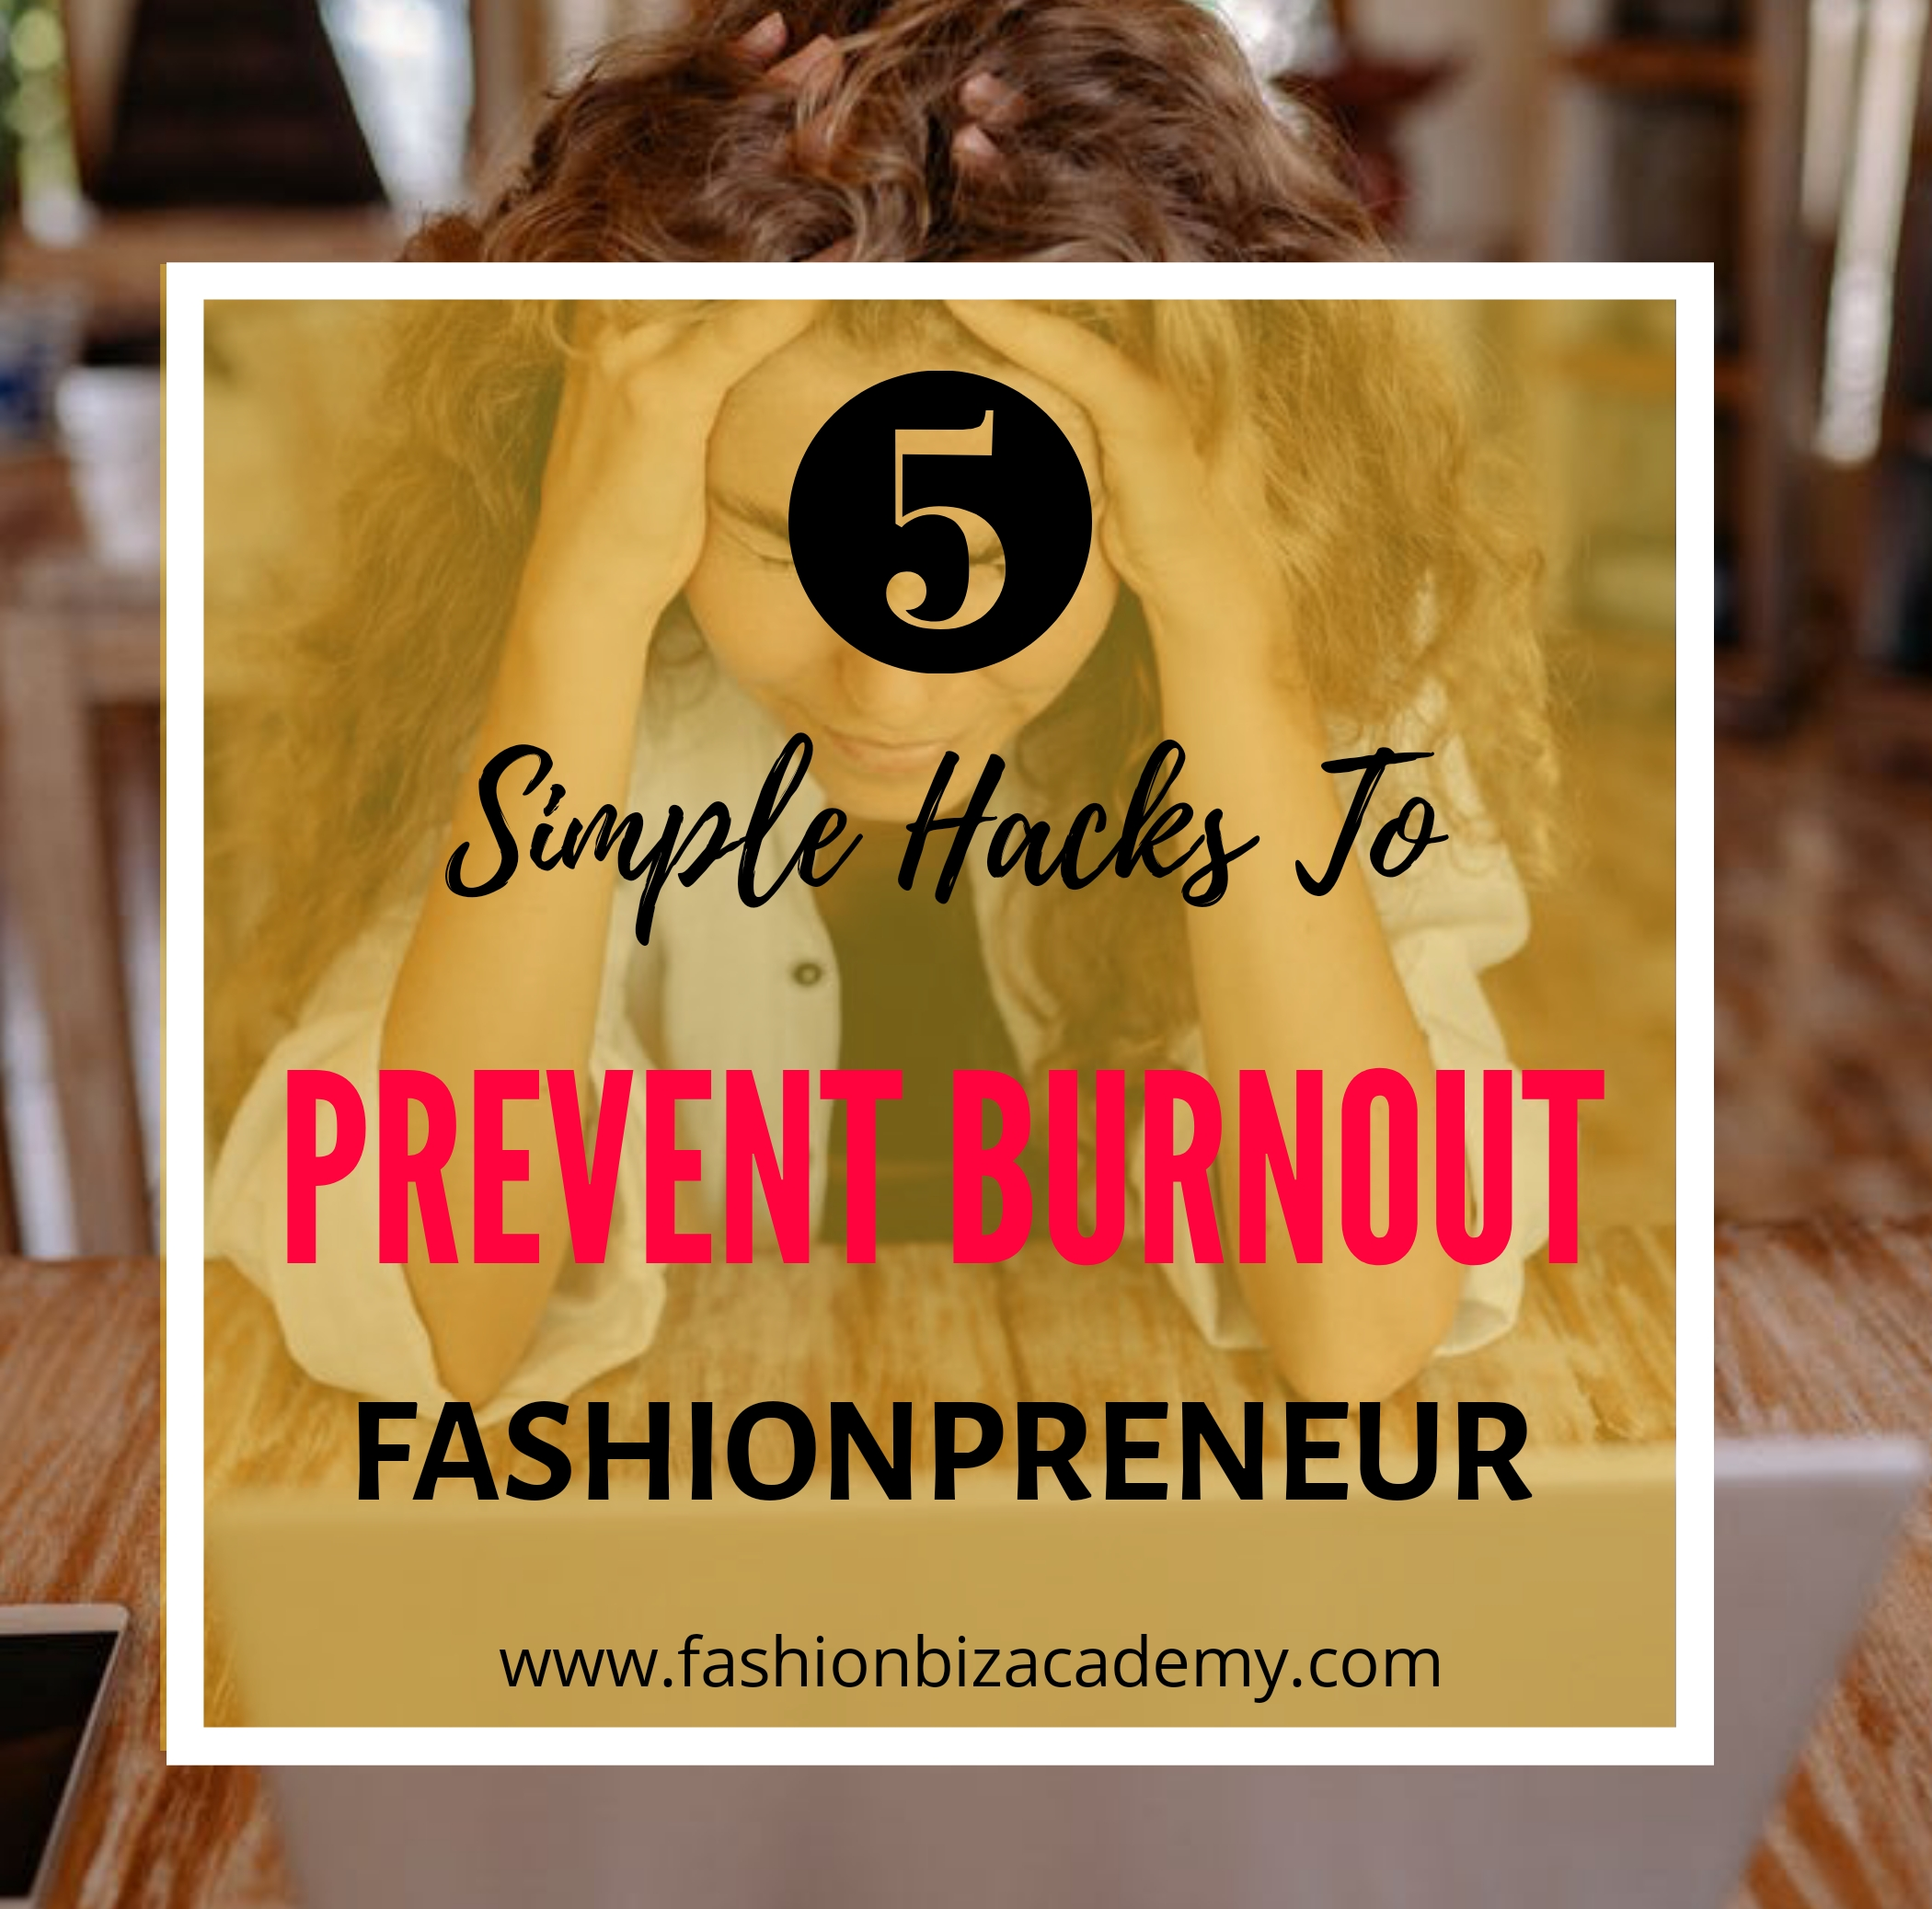 prevent burnout as a fashionpreneur